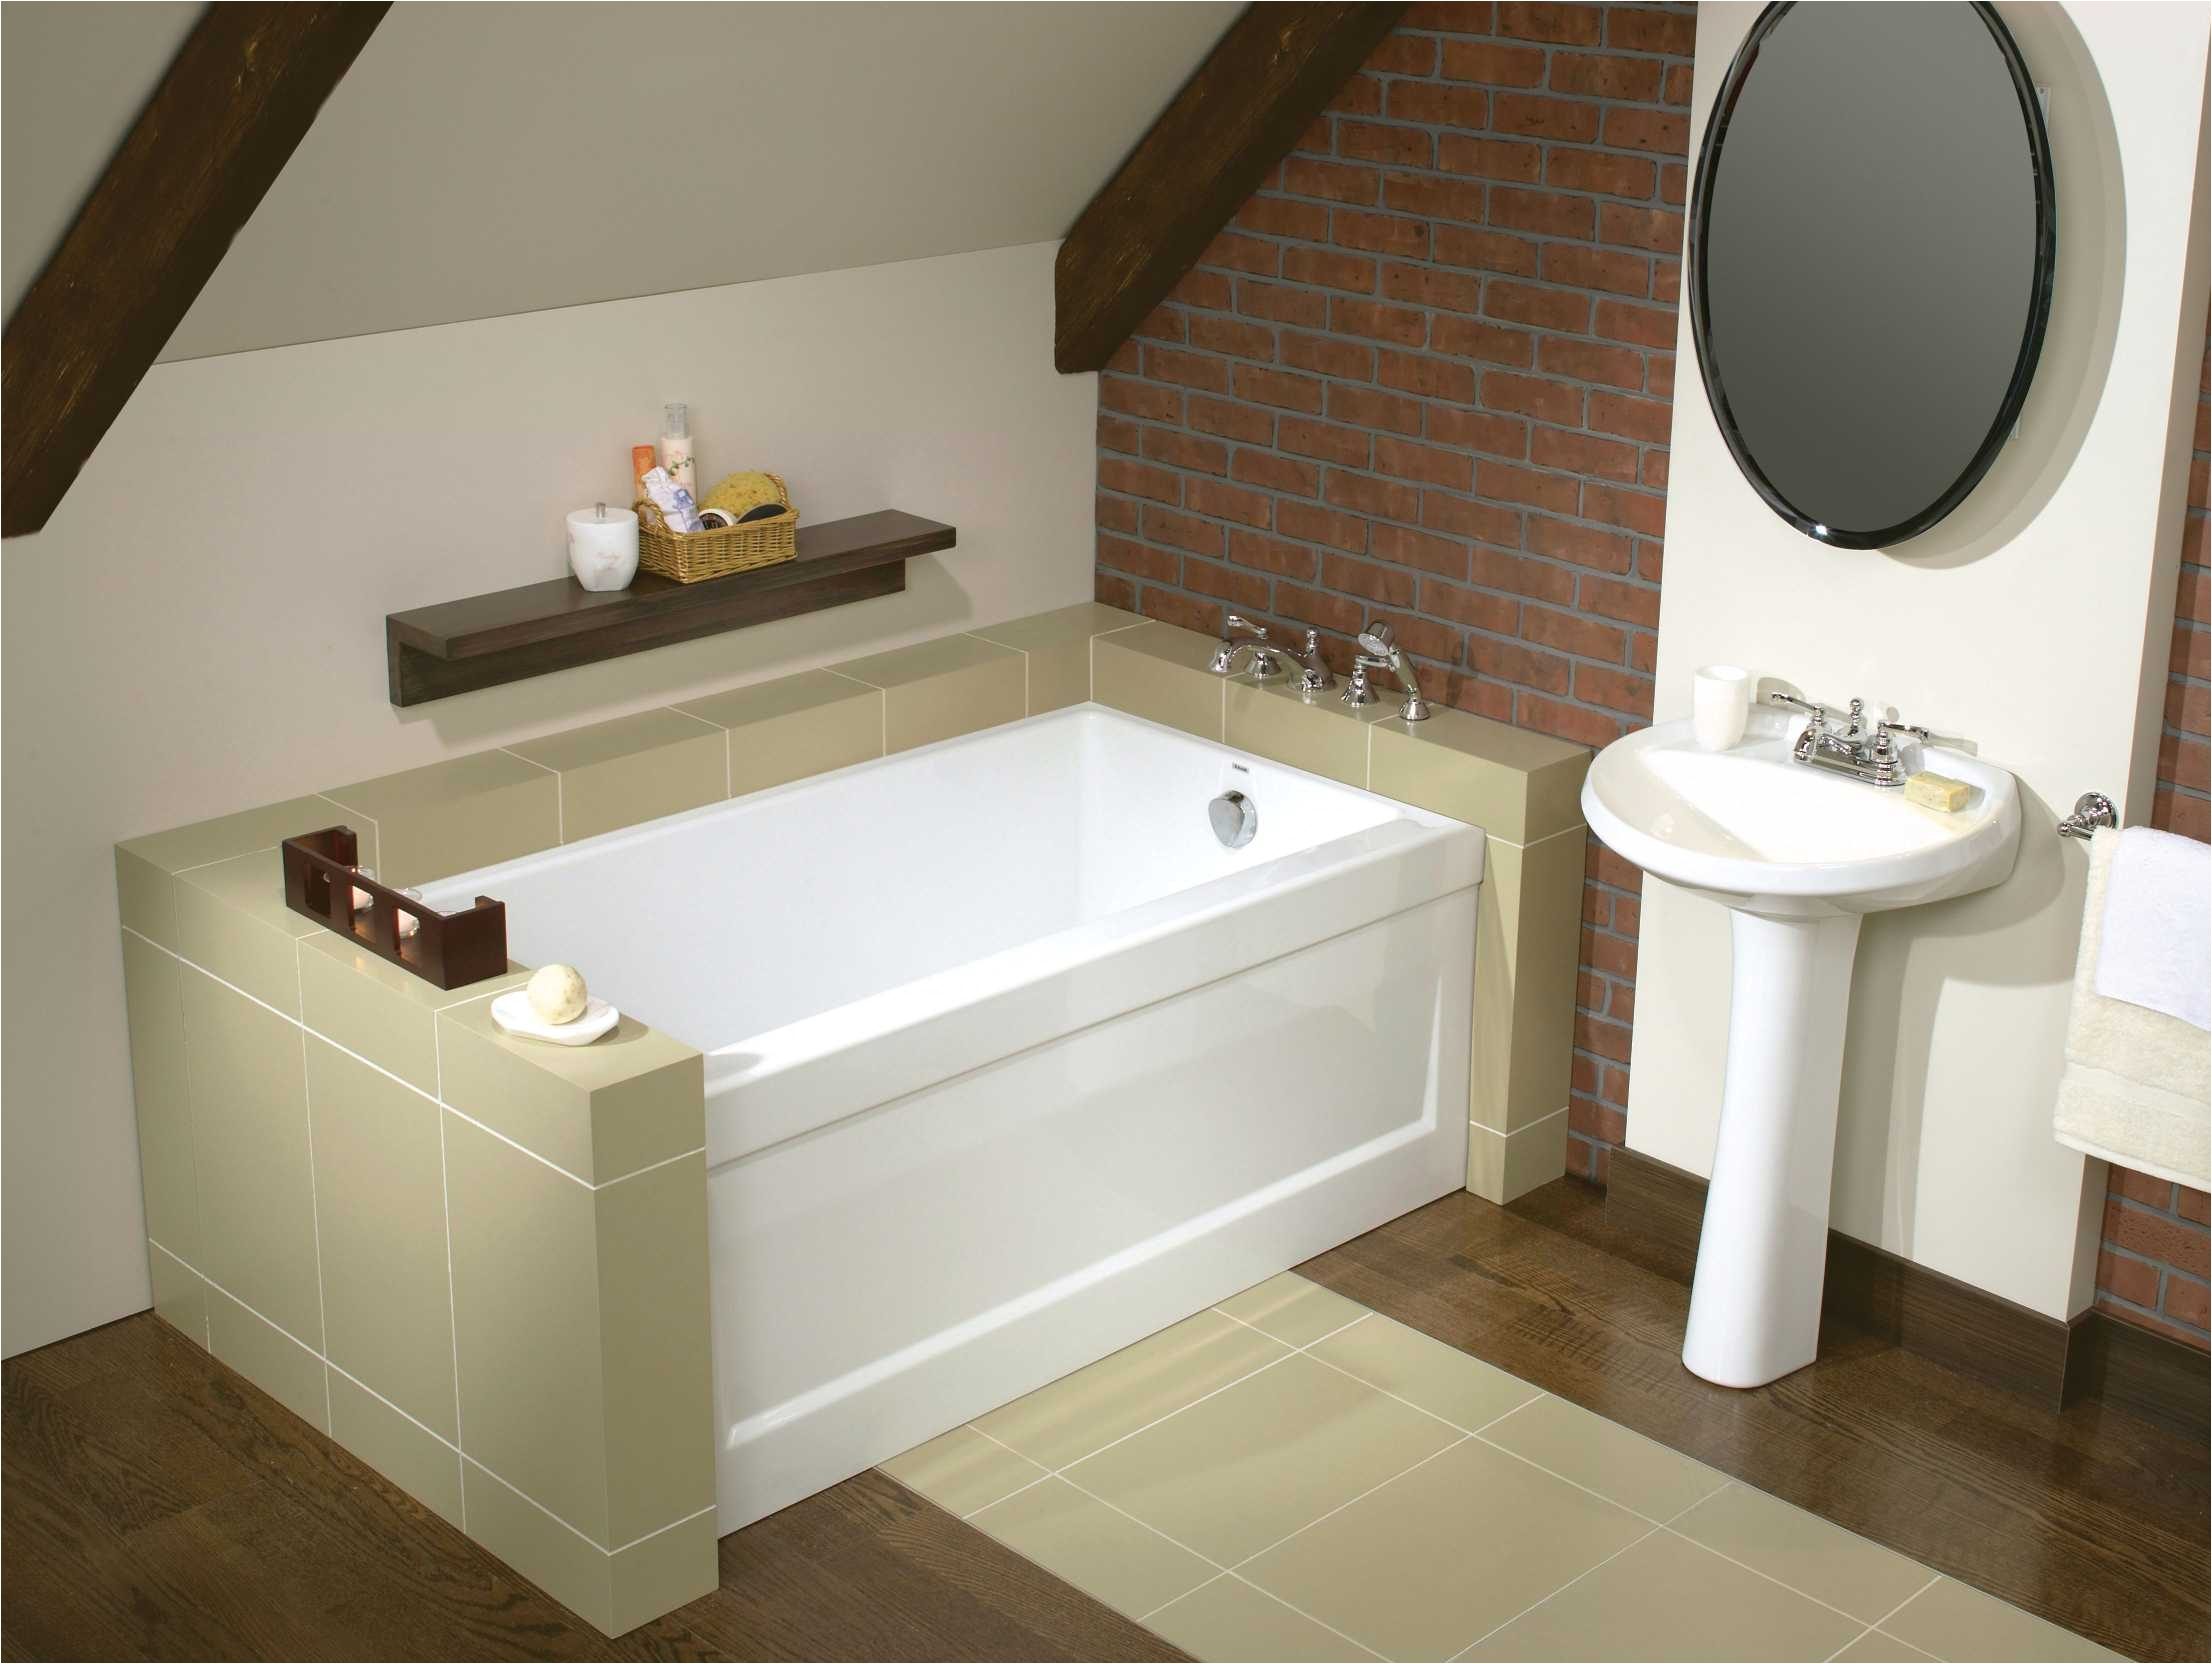 skyline a alcove bathtub maax professional 24 deep w tile flange and apron